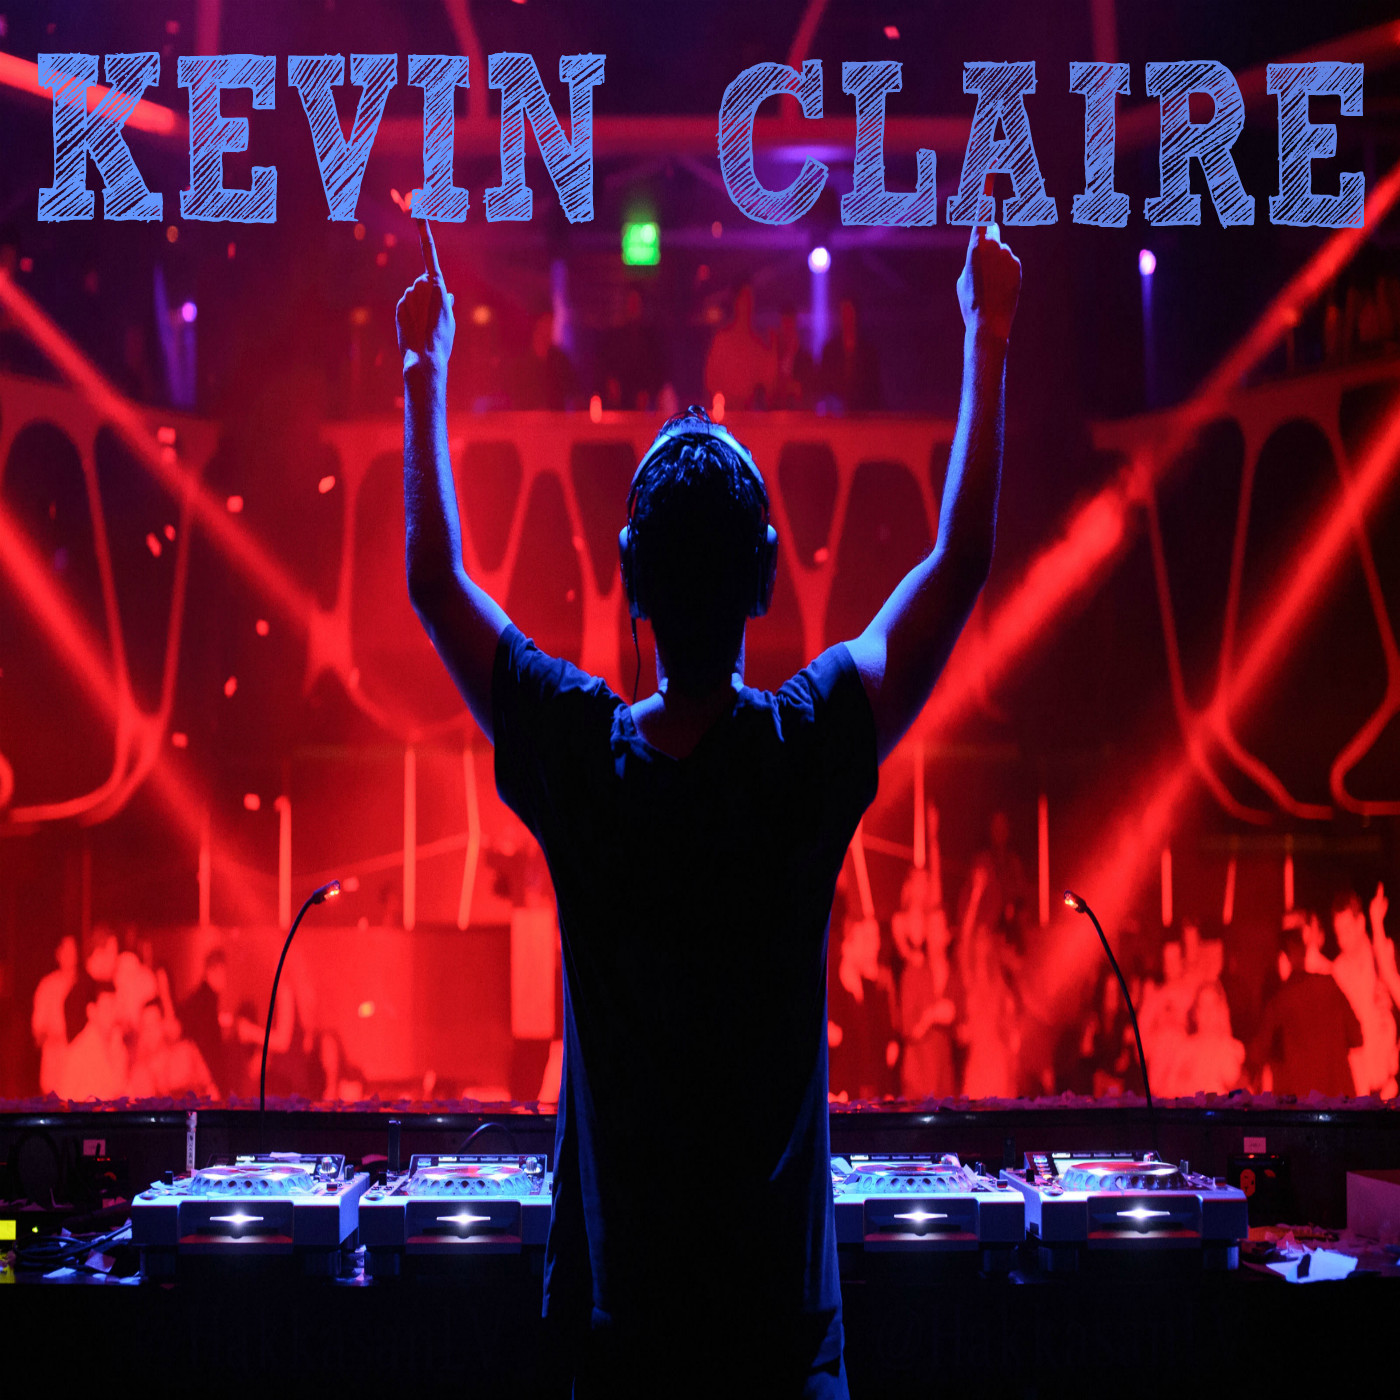 KEVIN CLAIRE